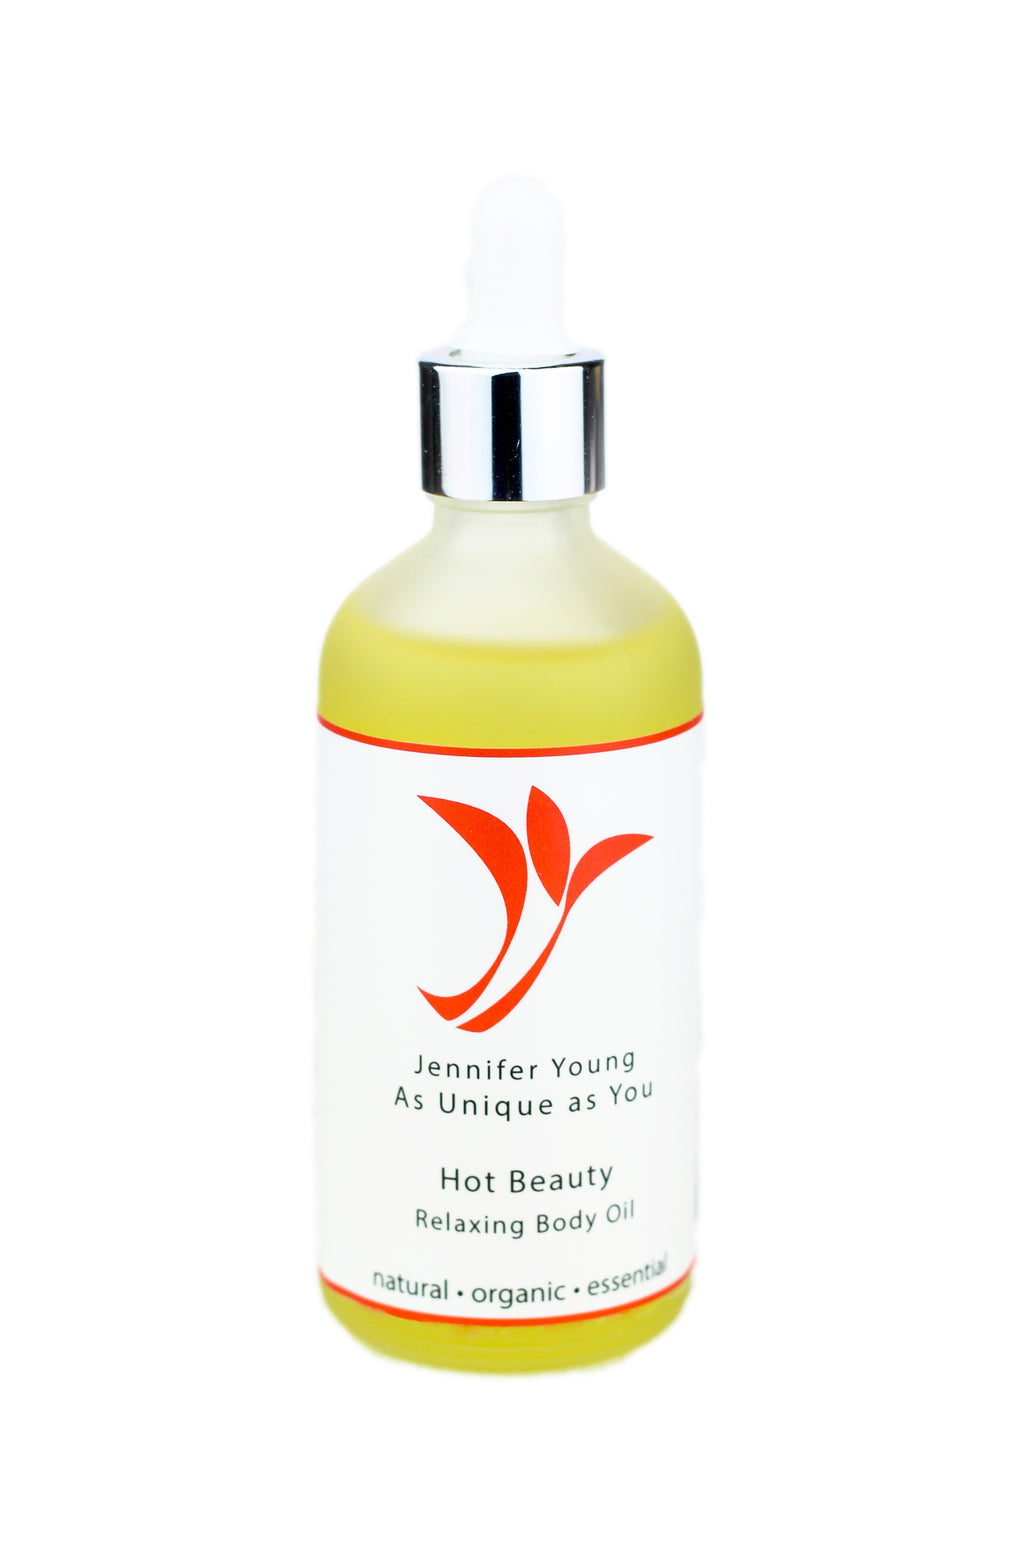 Hot Beauty by Jennifer Young - Body Oil (100g)